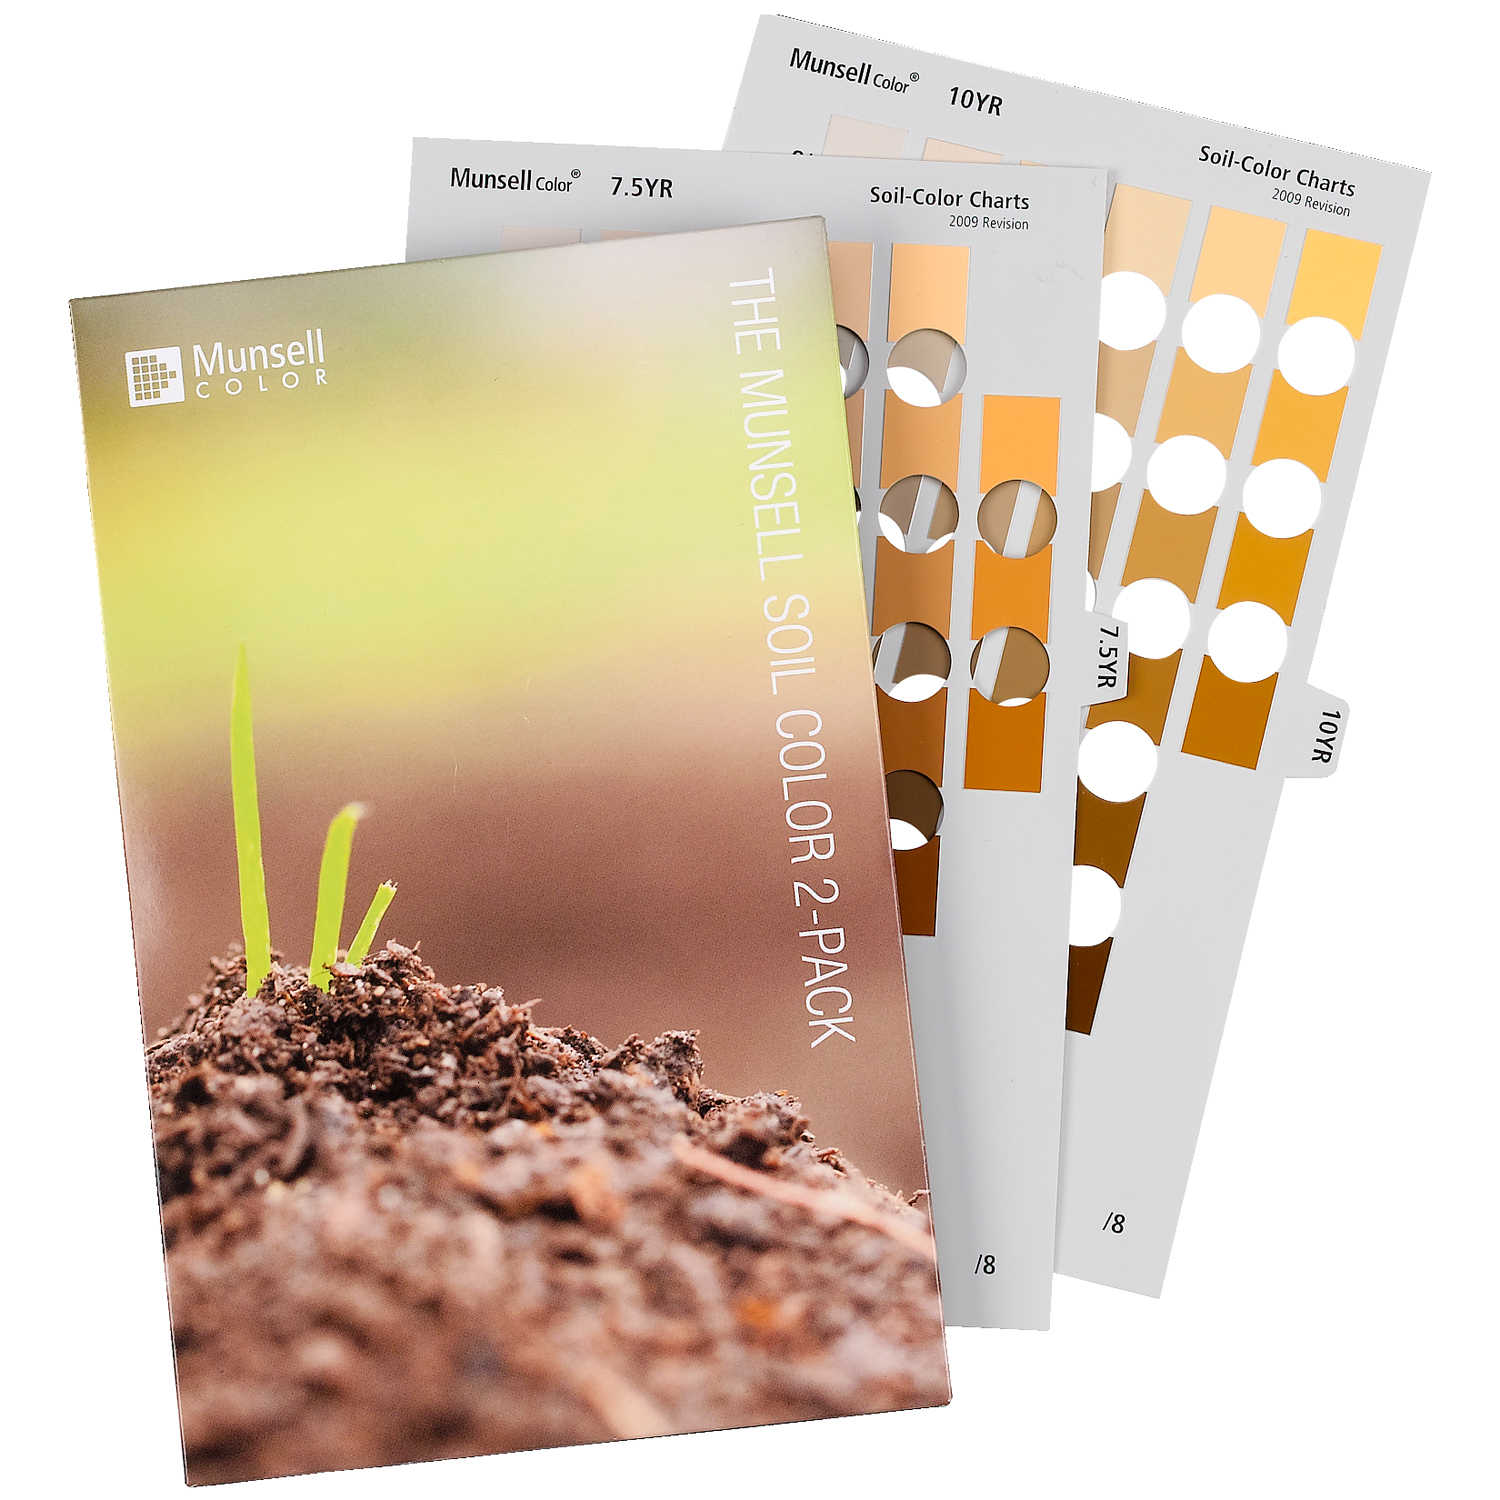 munsell soil color book replacement pages - Munsell Color Book